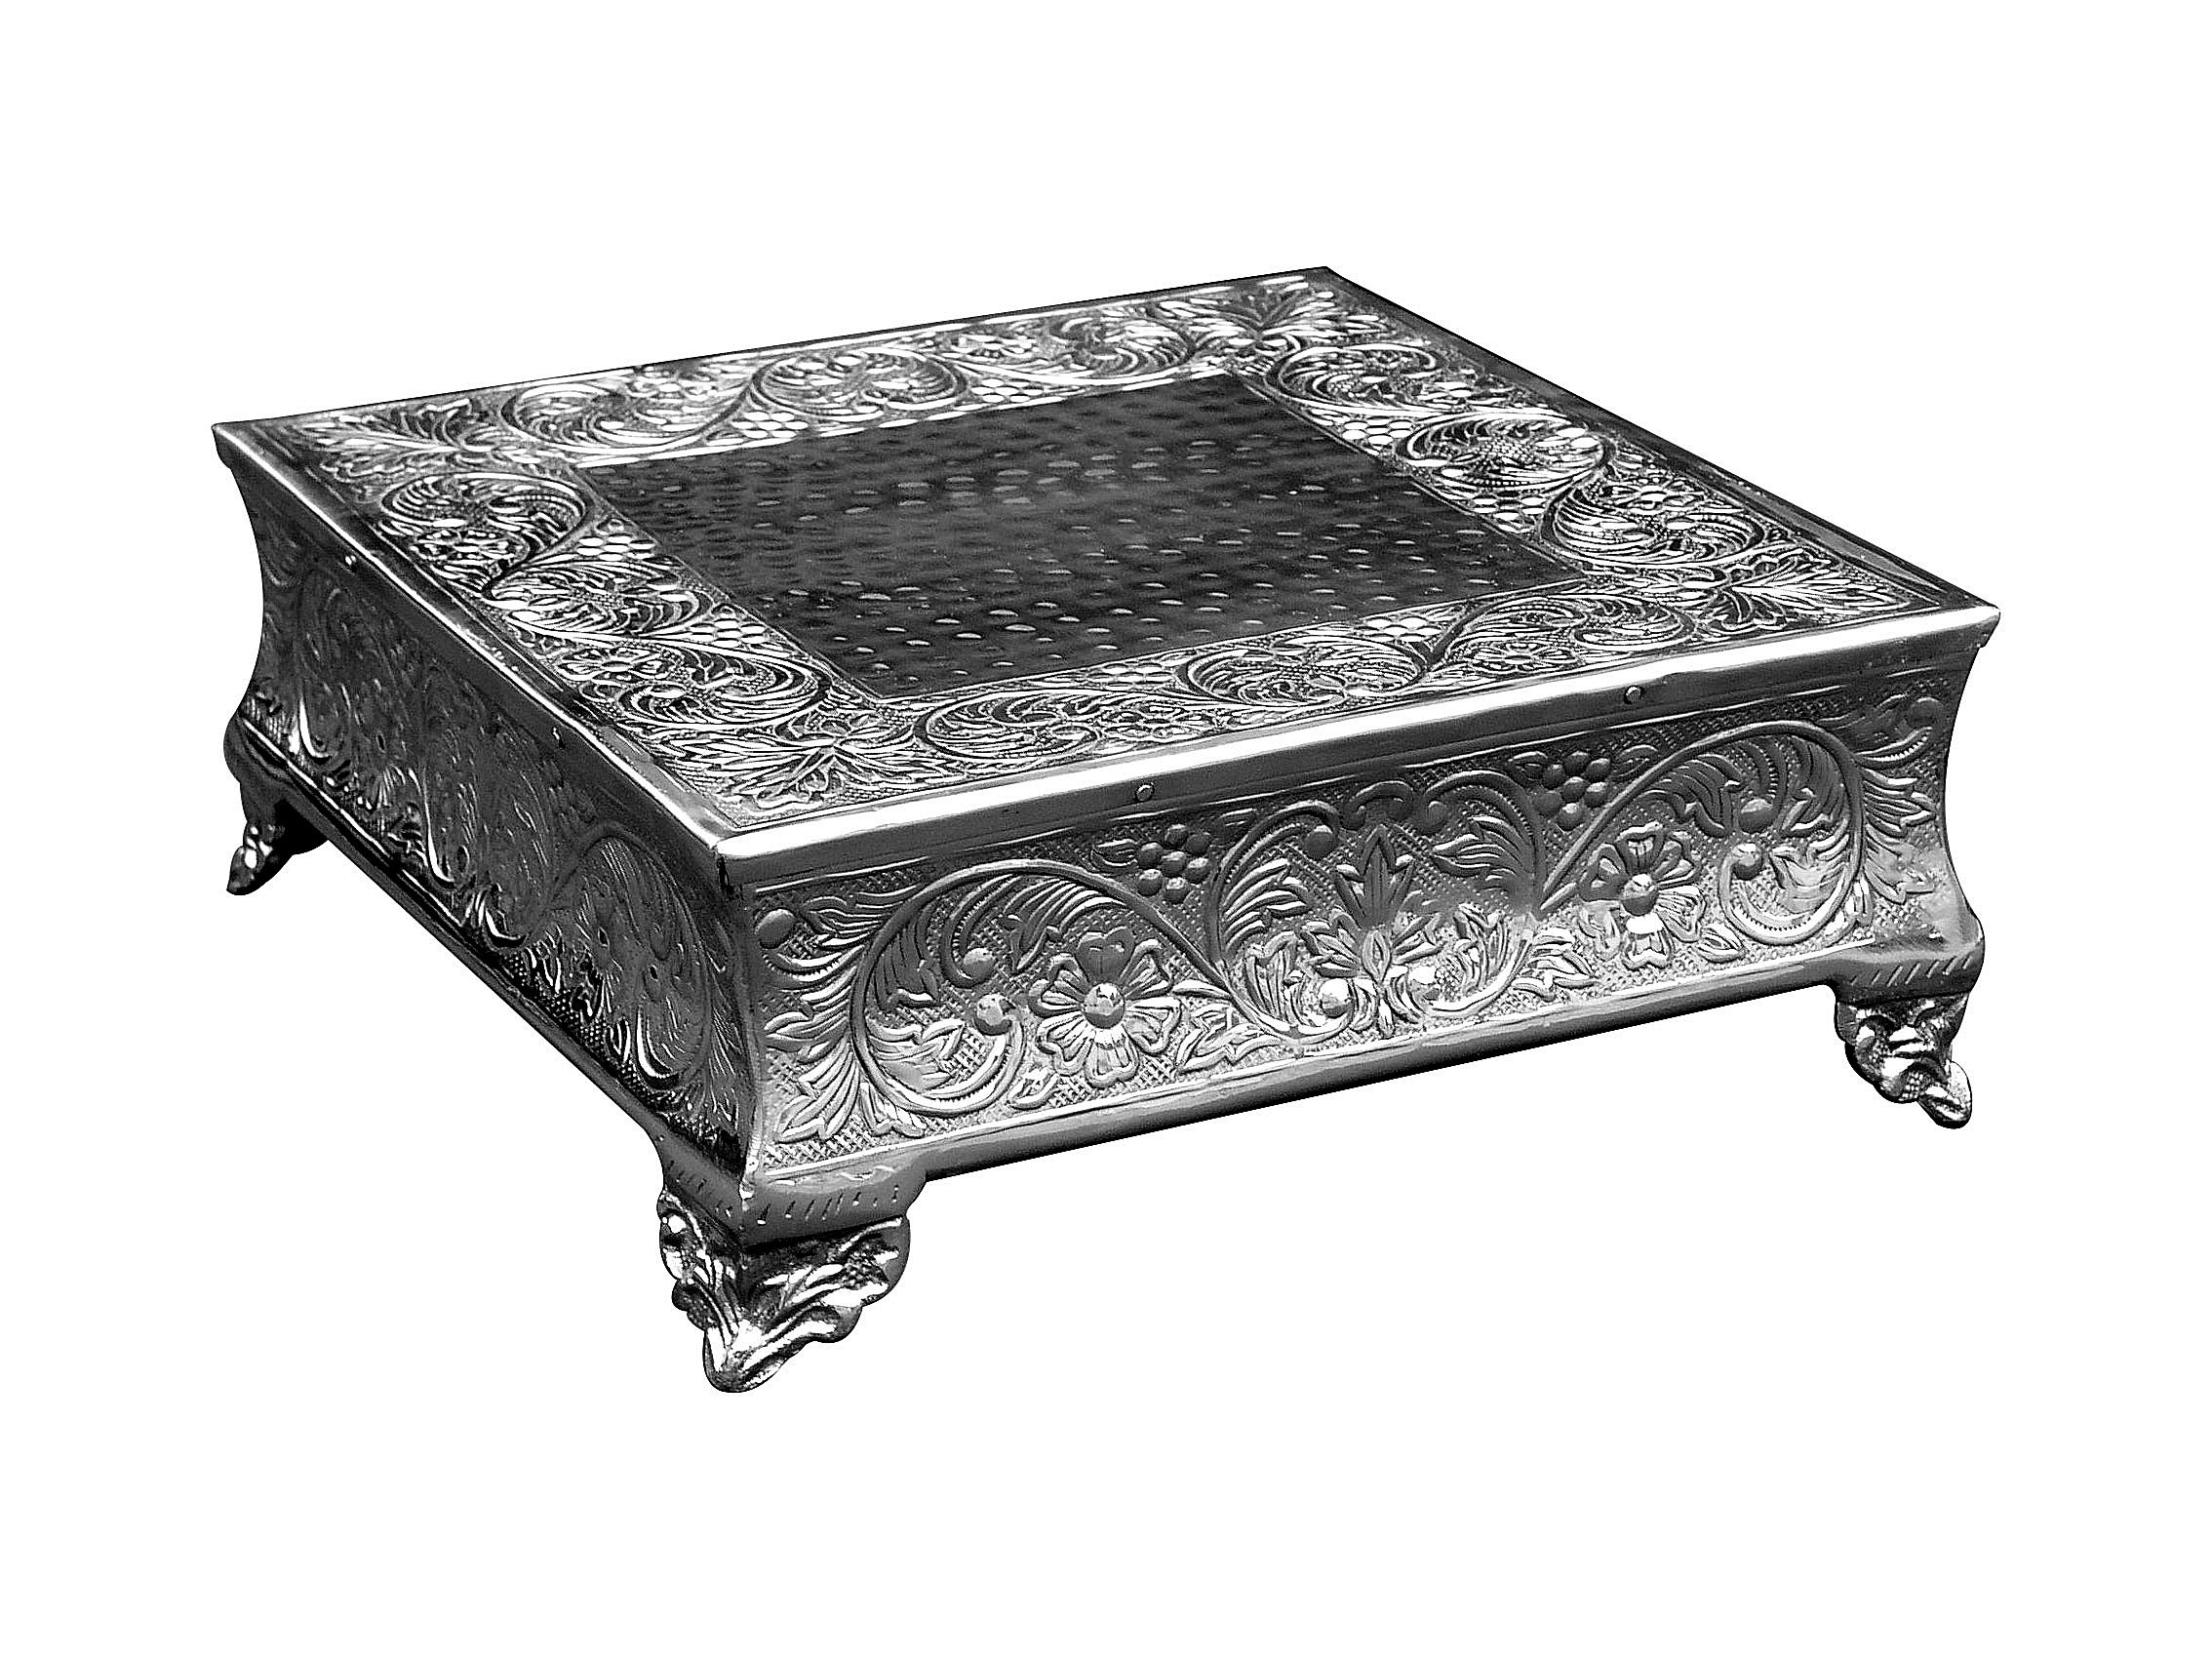 GiftBay Creations 751-22S Wedding Square Cake Stand, 22-Inch, Silver by GiftBay Creations (Image #4)